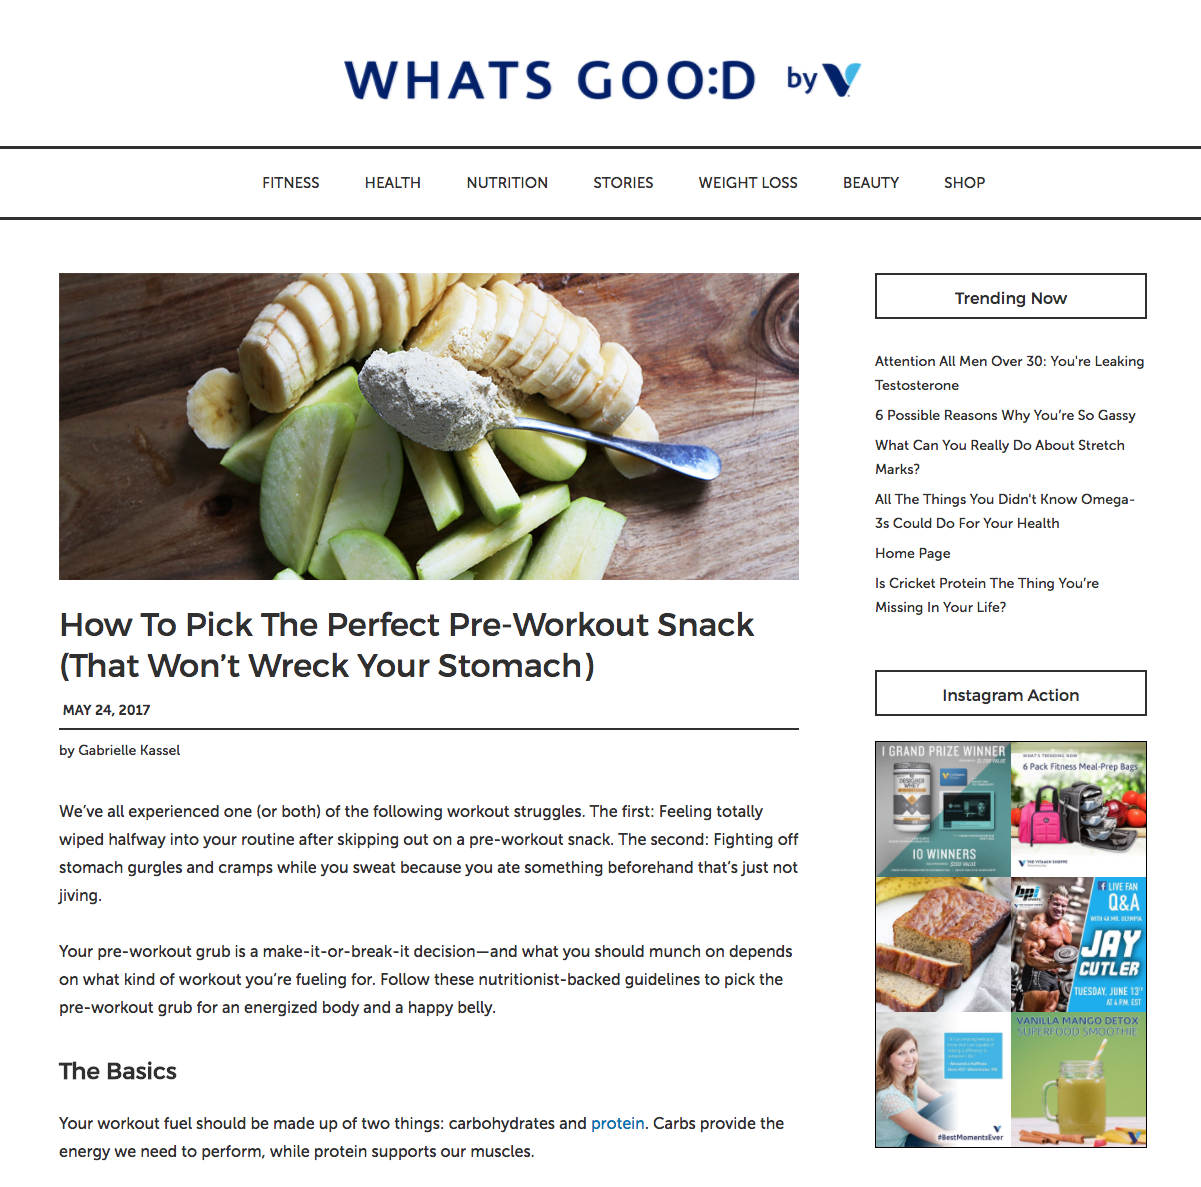 Vitamin Shoppe - Jonathan Valdez discusses carbohydrate and protein recommendations for pre-workout snacks and meals.https://whatsgood.vitaminshoppe.com/2017/05/24/pre-workout-snacks/